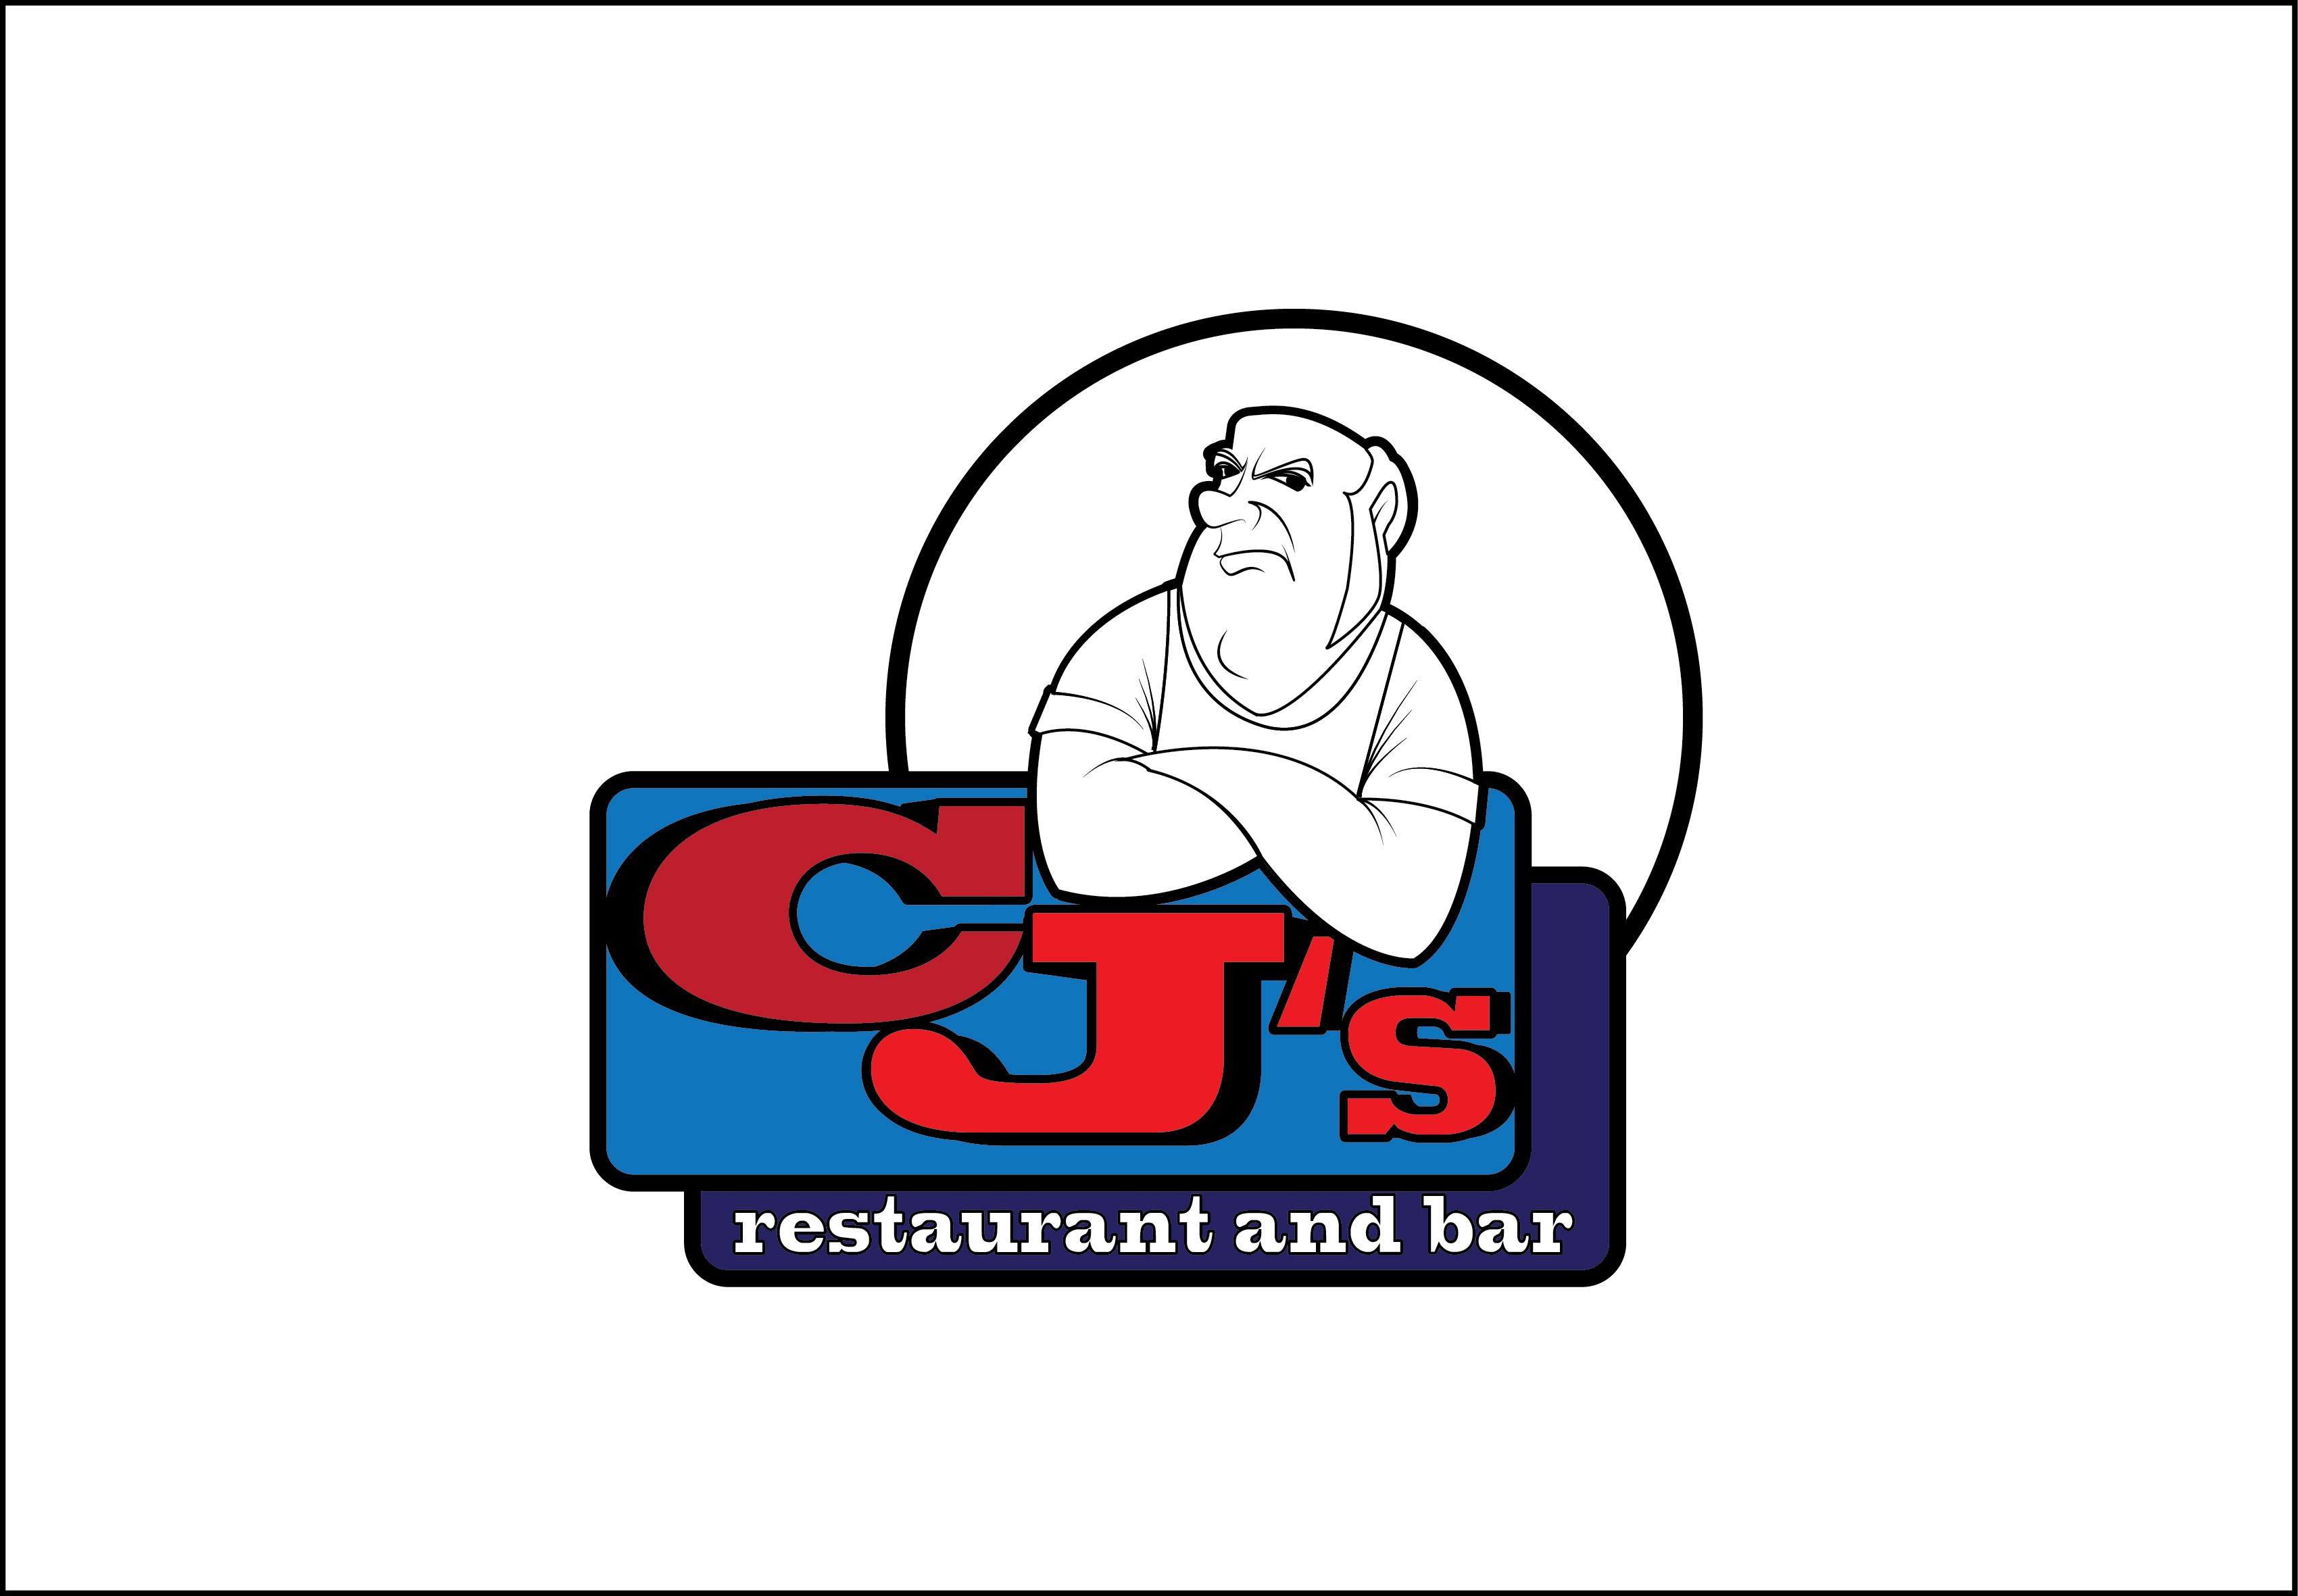 Logo Design by Chandrodayan Mavadian - Entry No. 116 in the Logo Design Contest Inspiring Logo Design for Cj's.